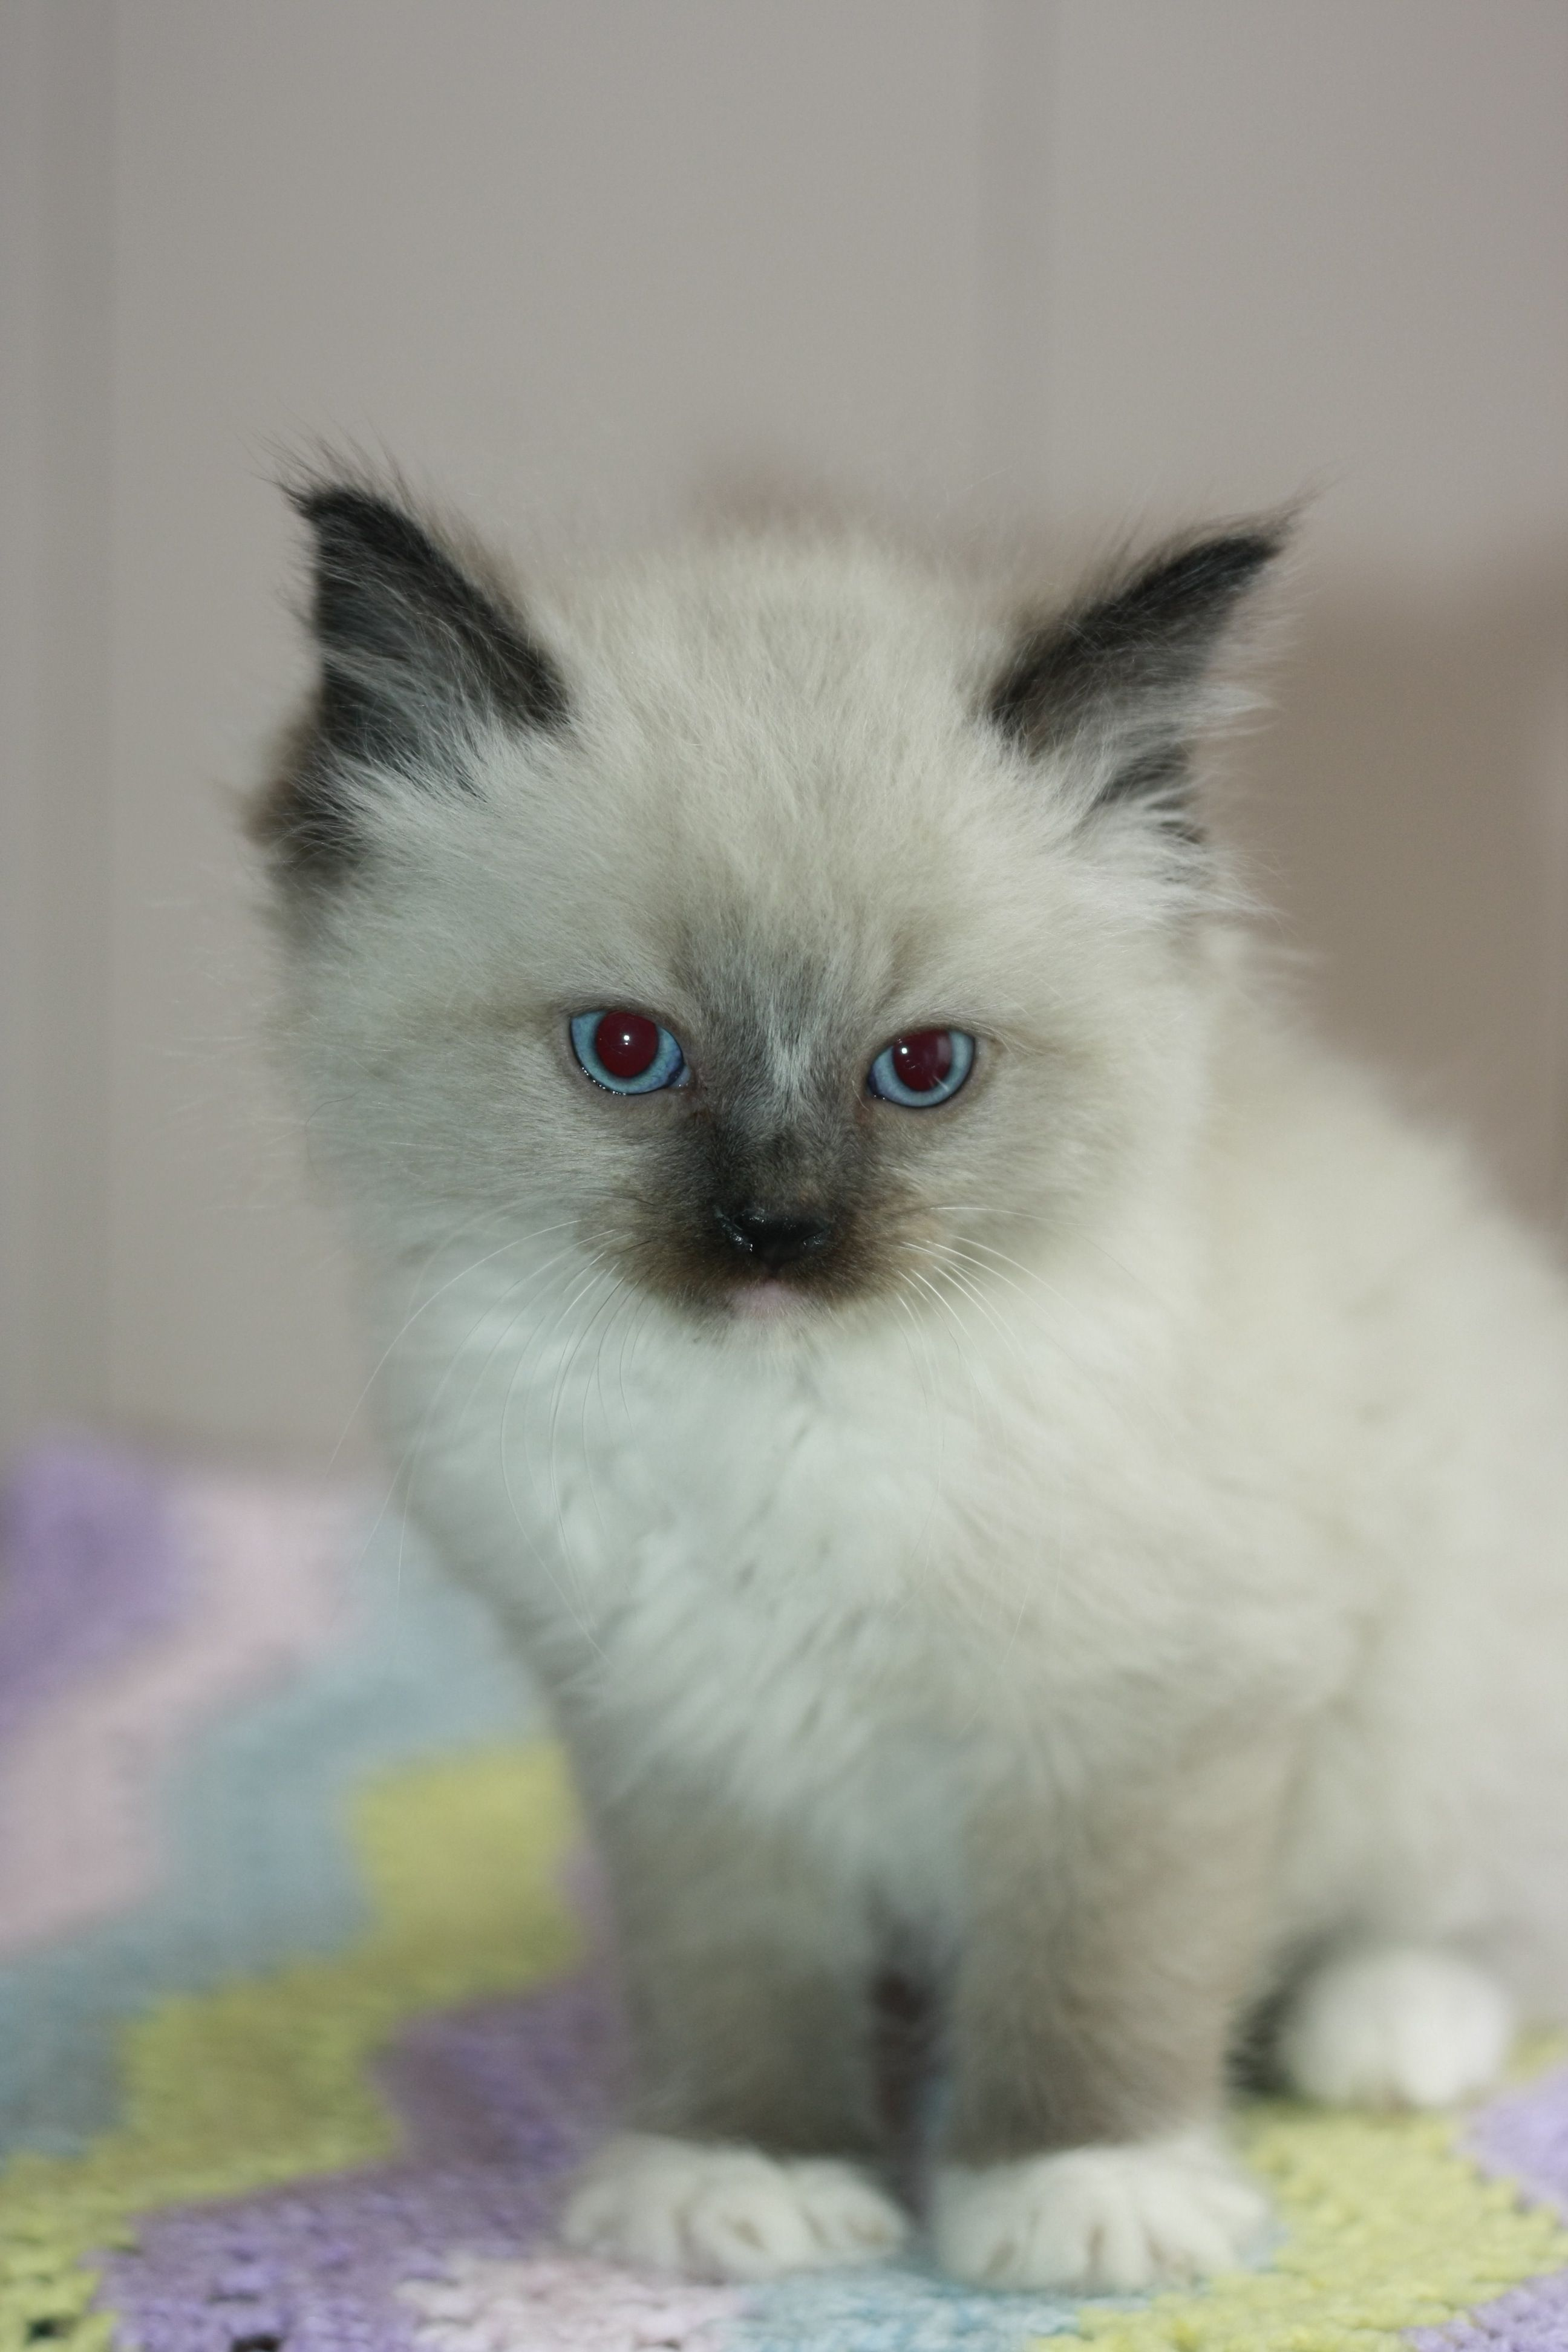 Here He Is At 6 Weeks Gorgeous Coloring Cat Lady Starter Kit Ragdoll Kitten Pet Lover Jewelry